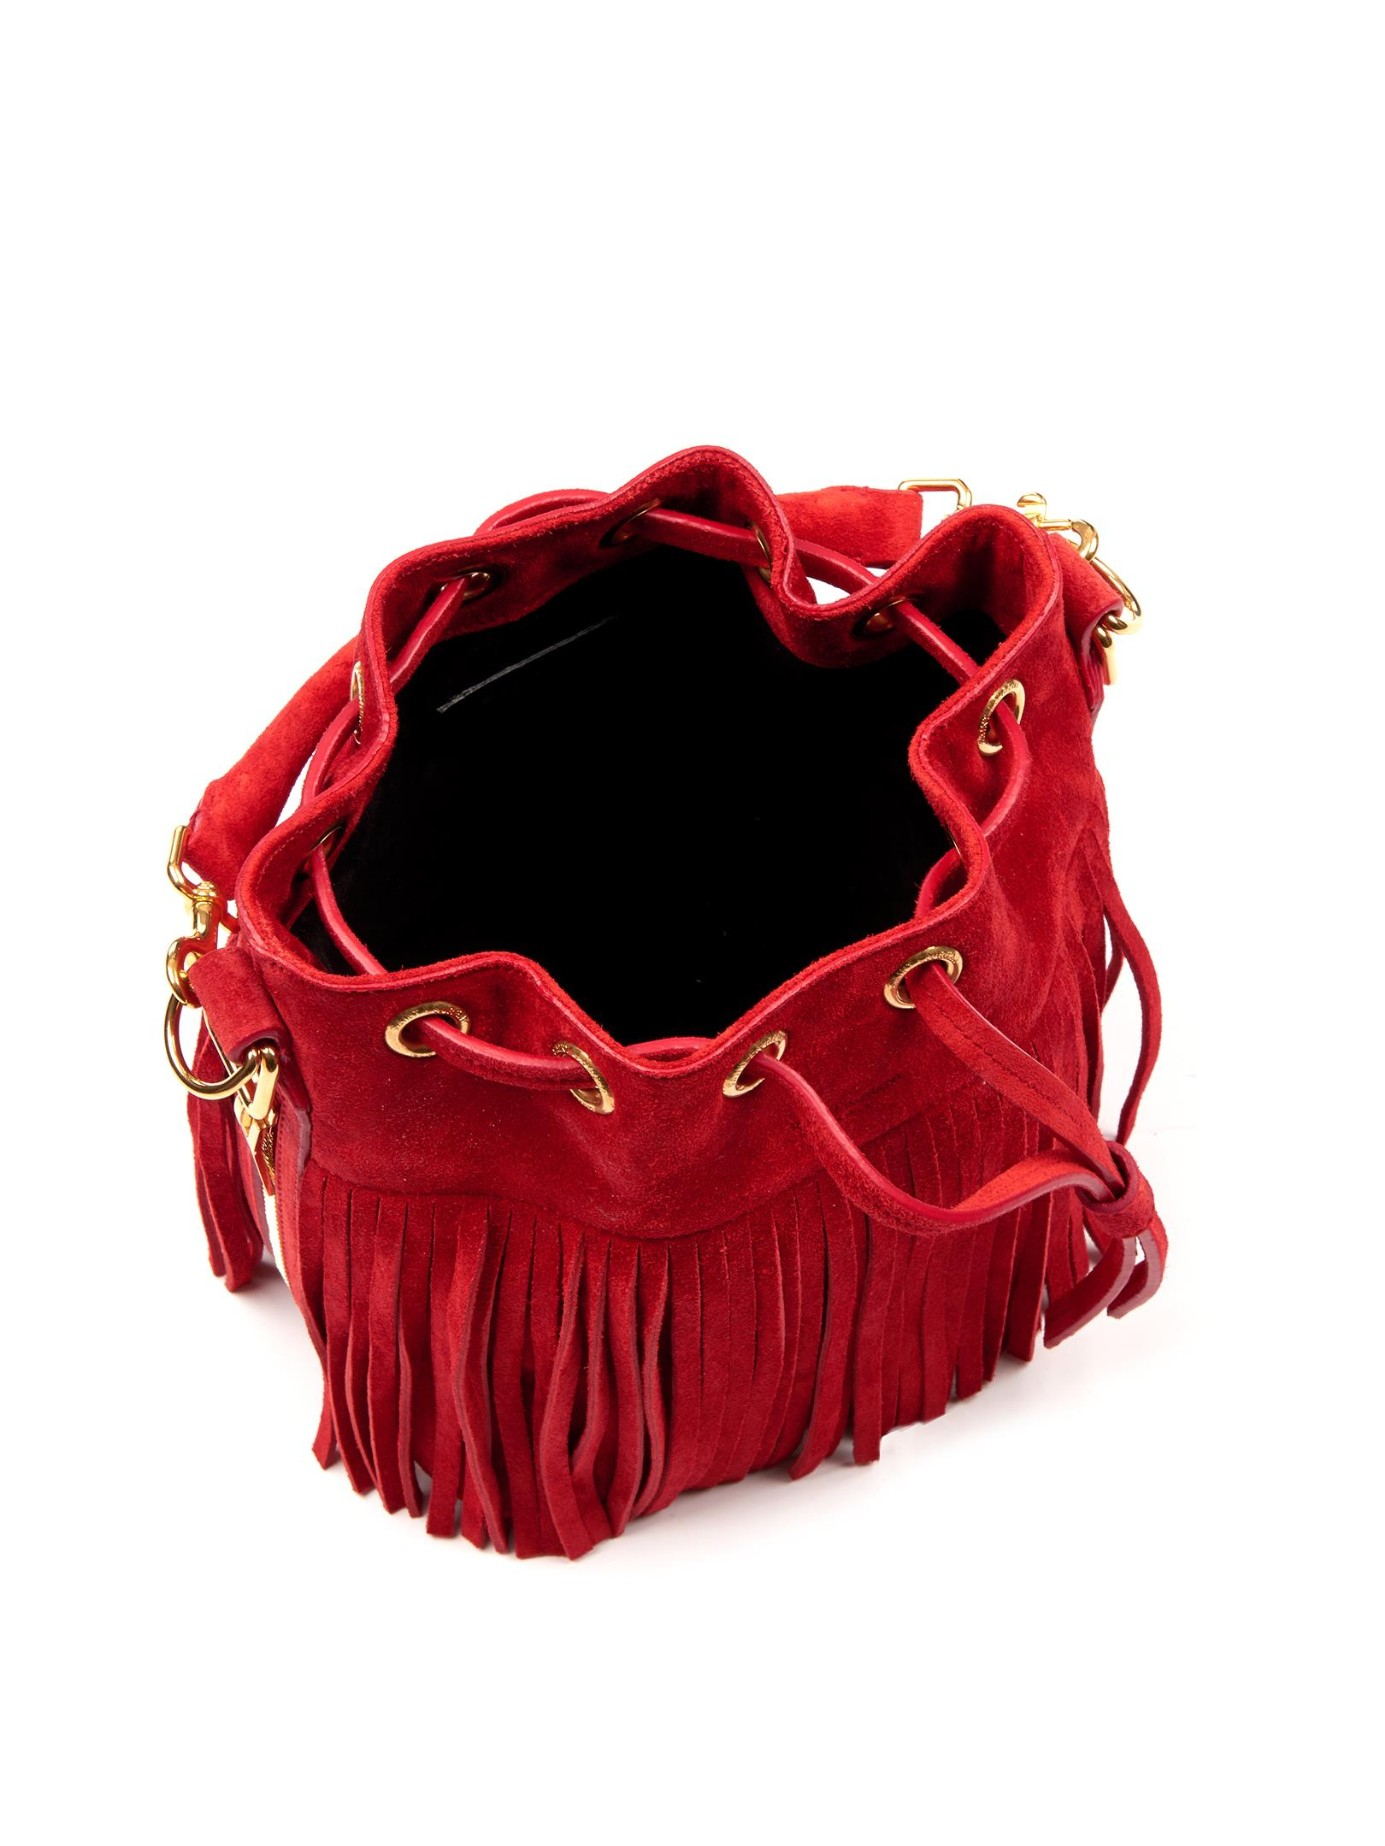 ysl chyc cabas price - emmanuelle tricolor fringe bucket bag, red/pink/purple